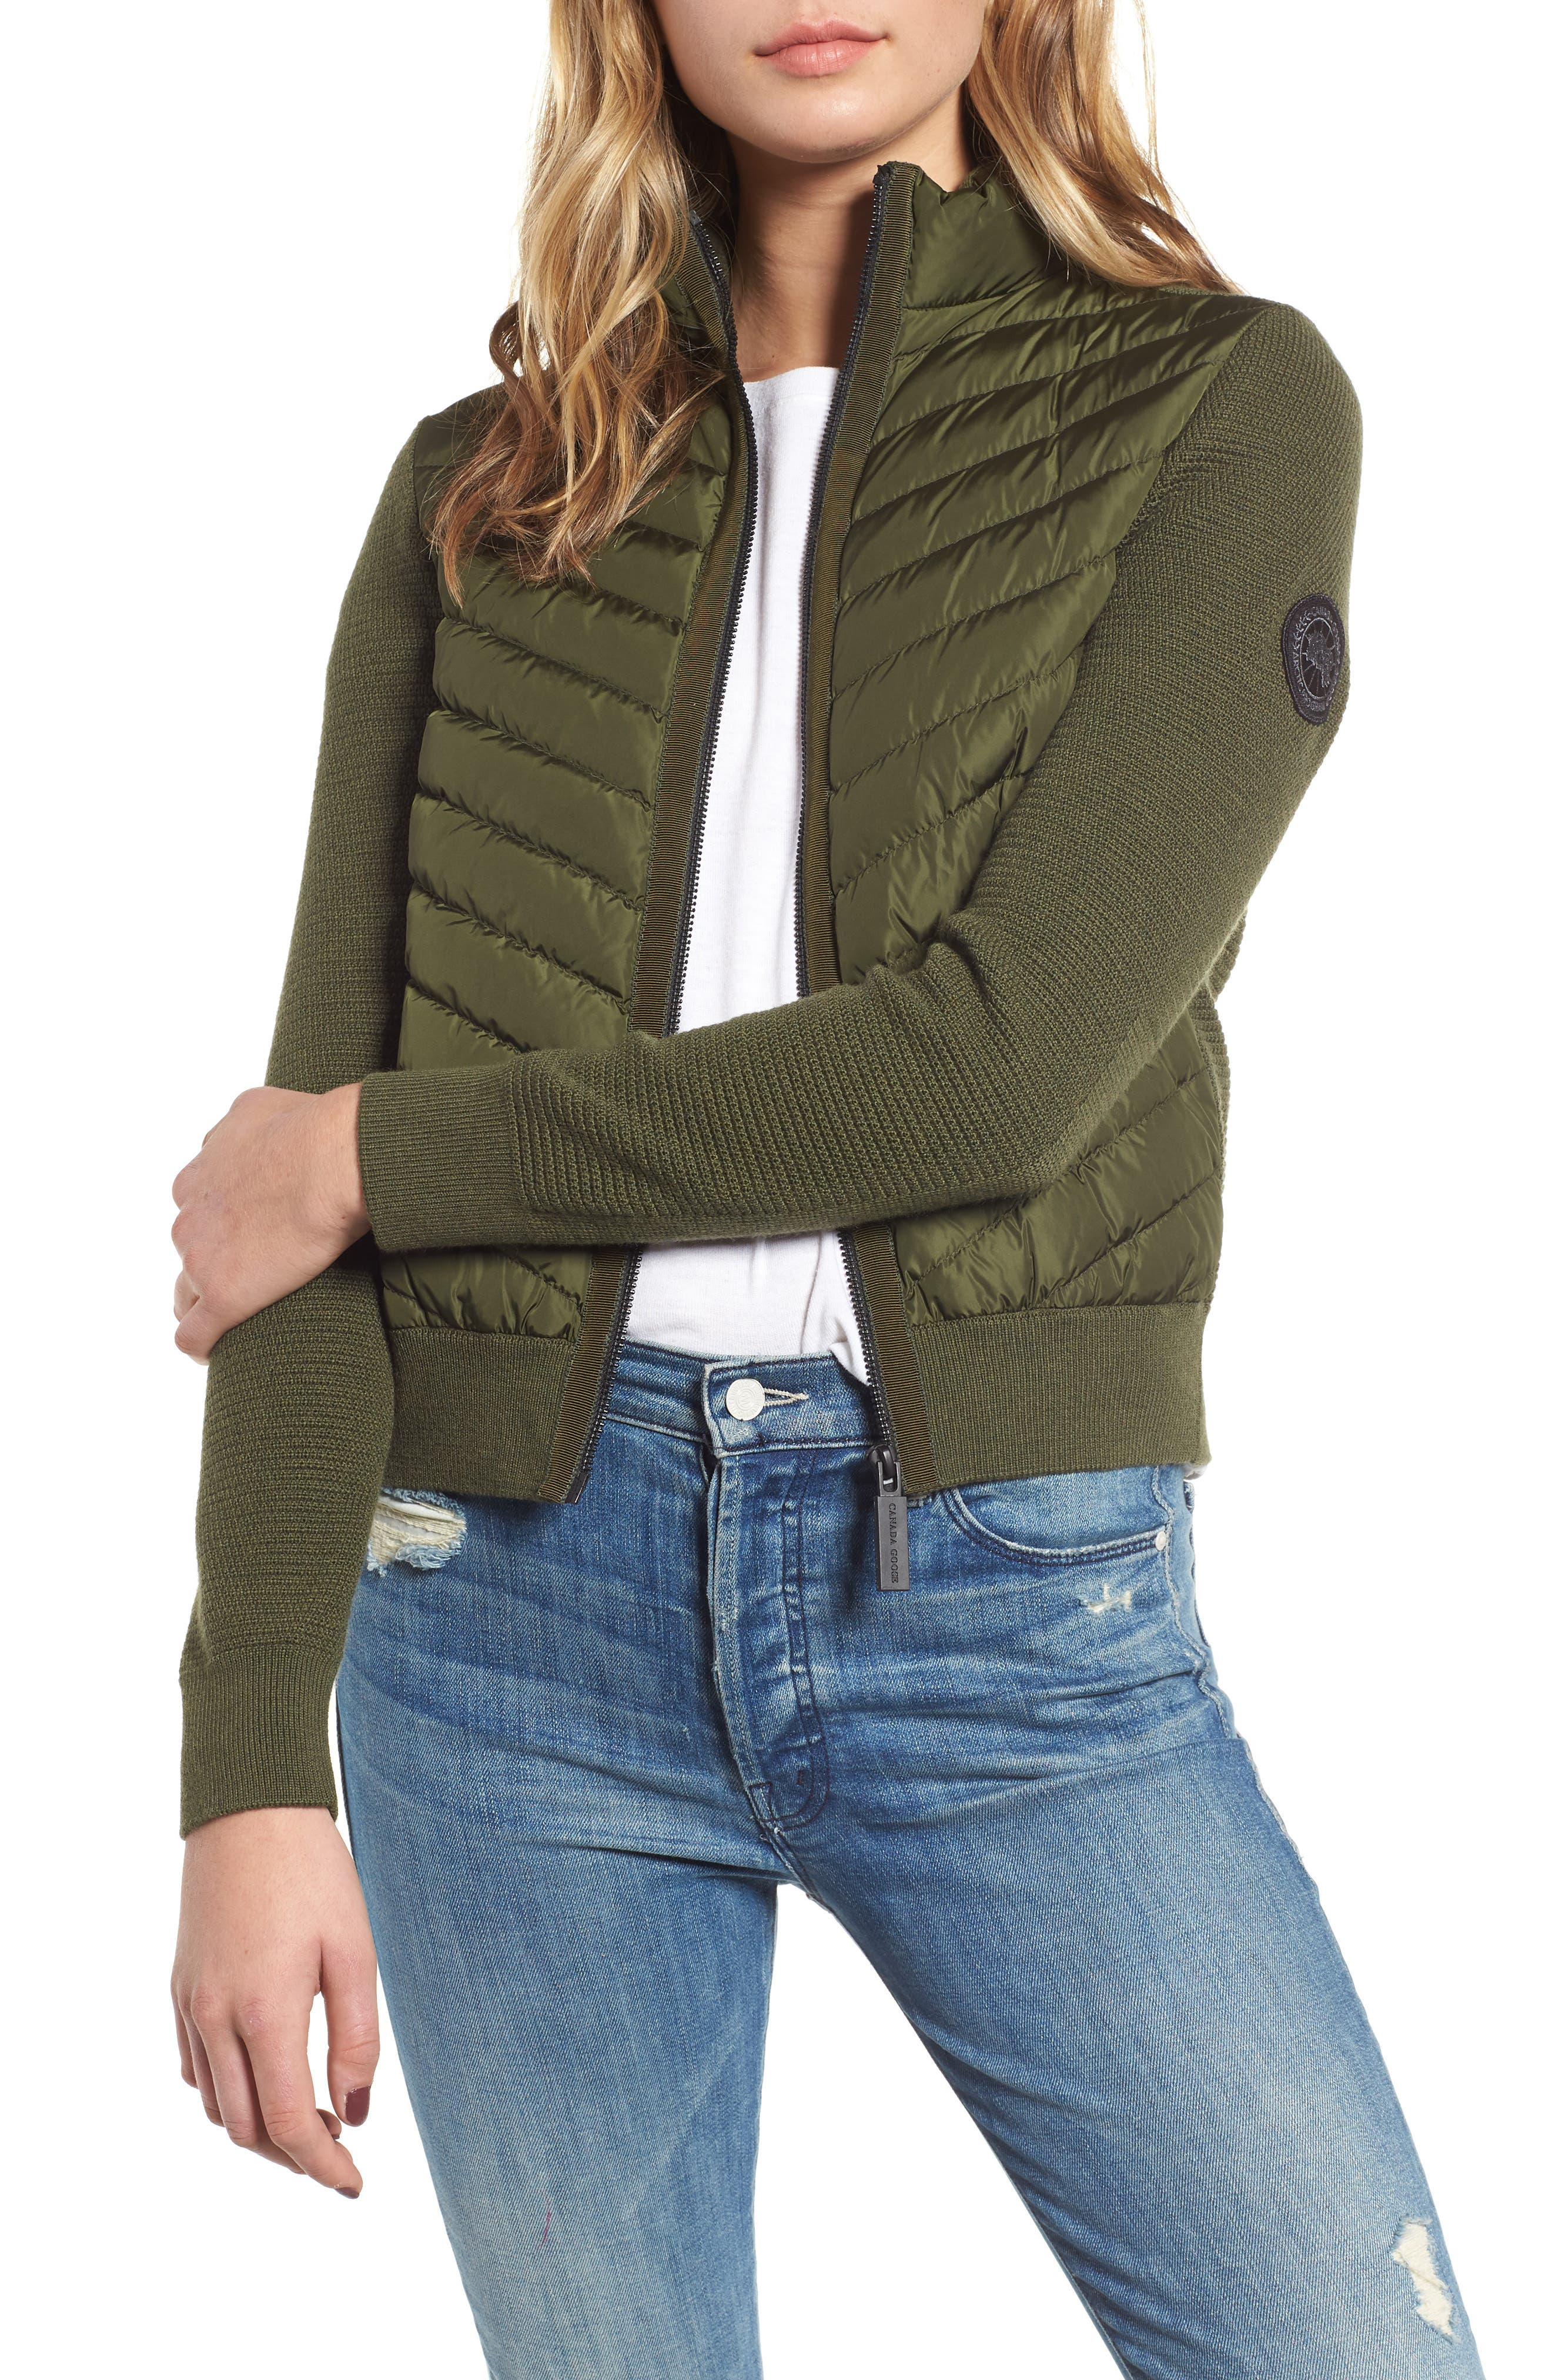 Canada Goose Hybridge Quilted & Knit Jacket, (2-4) - Green